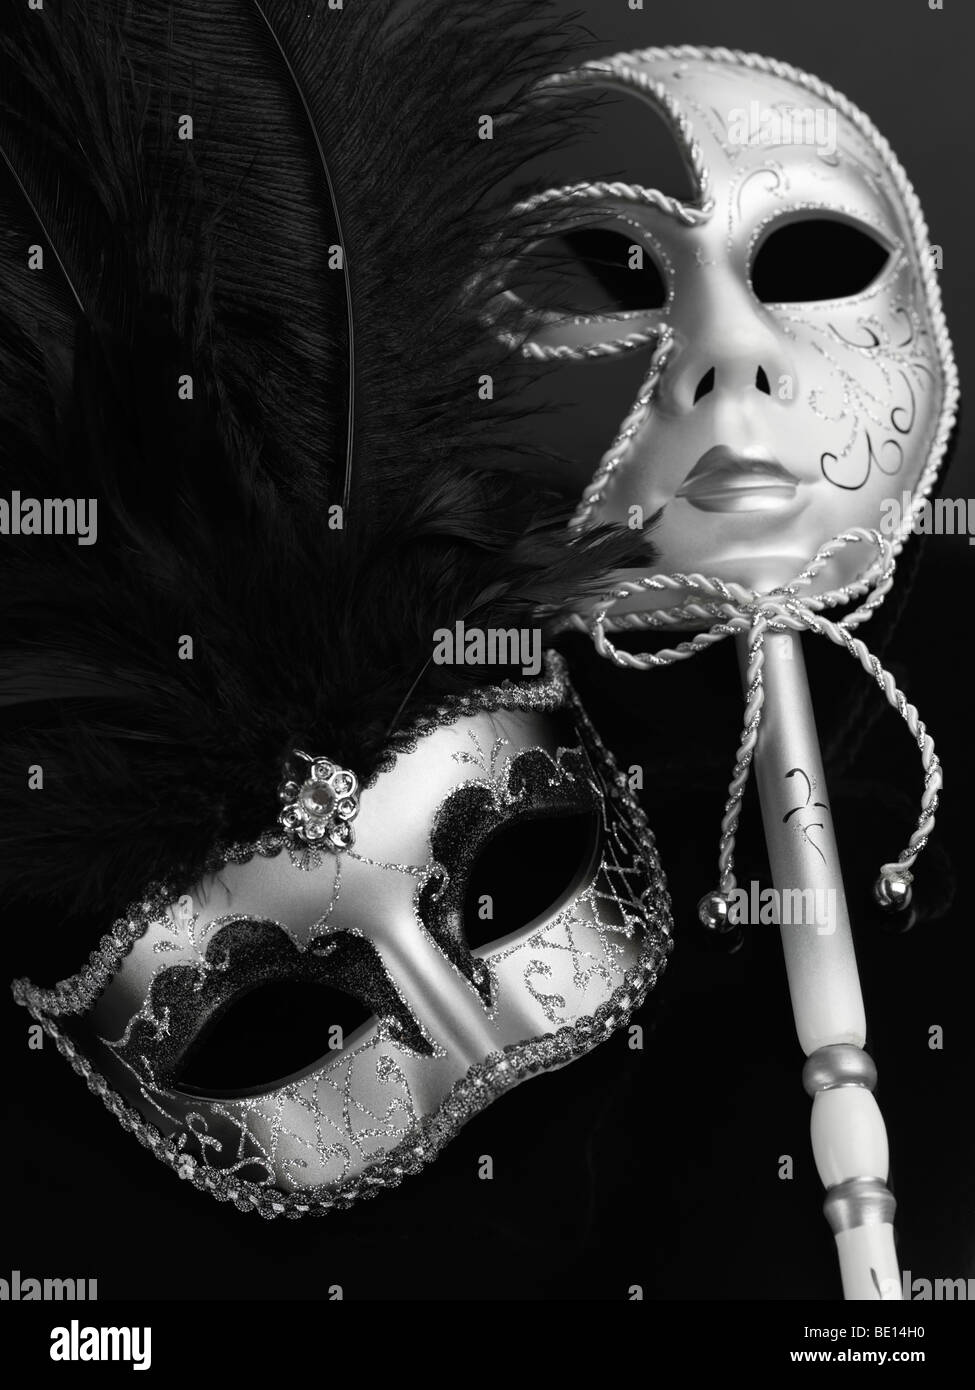 Two silvery Venetian masks - Stock Image